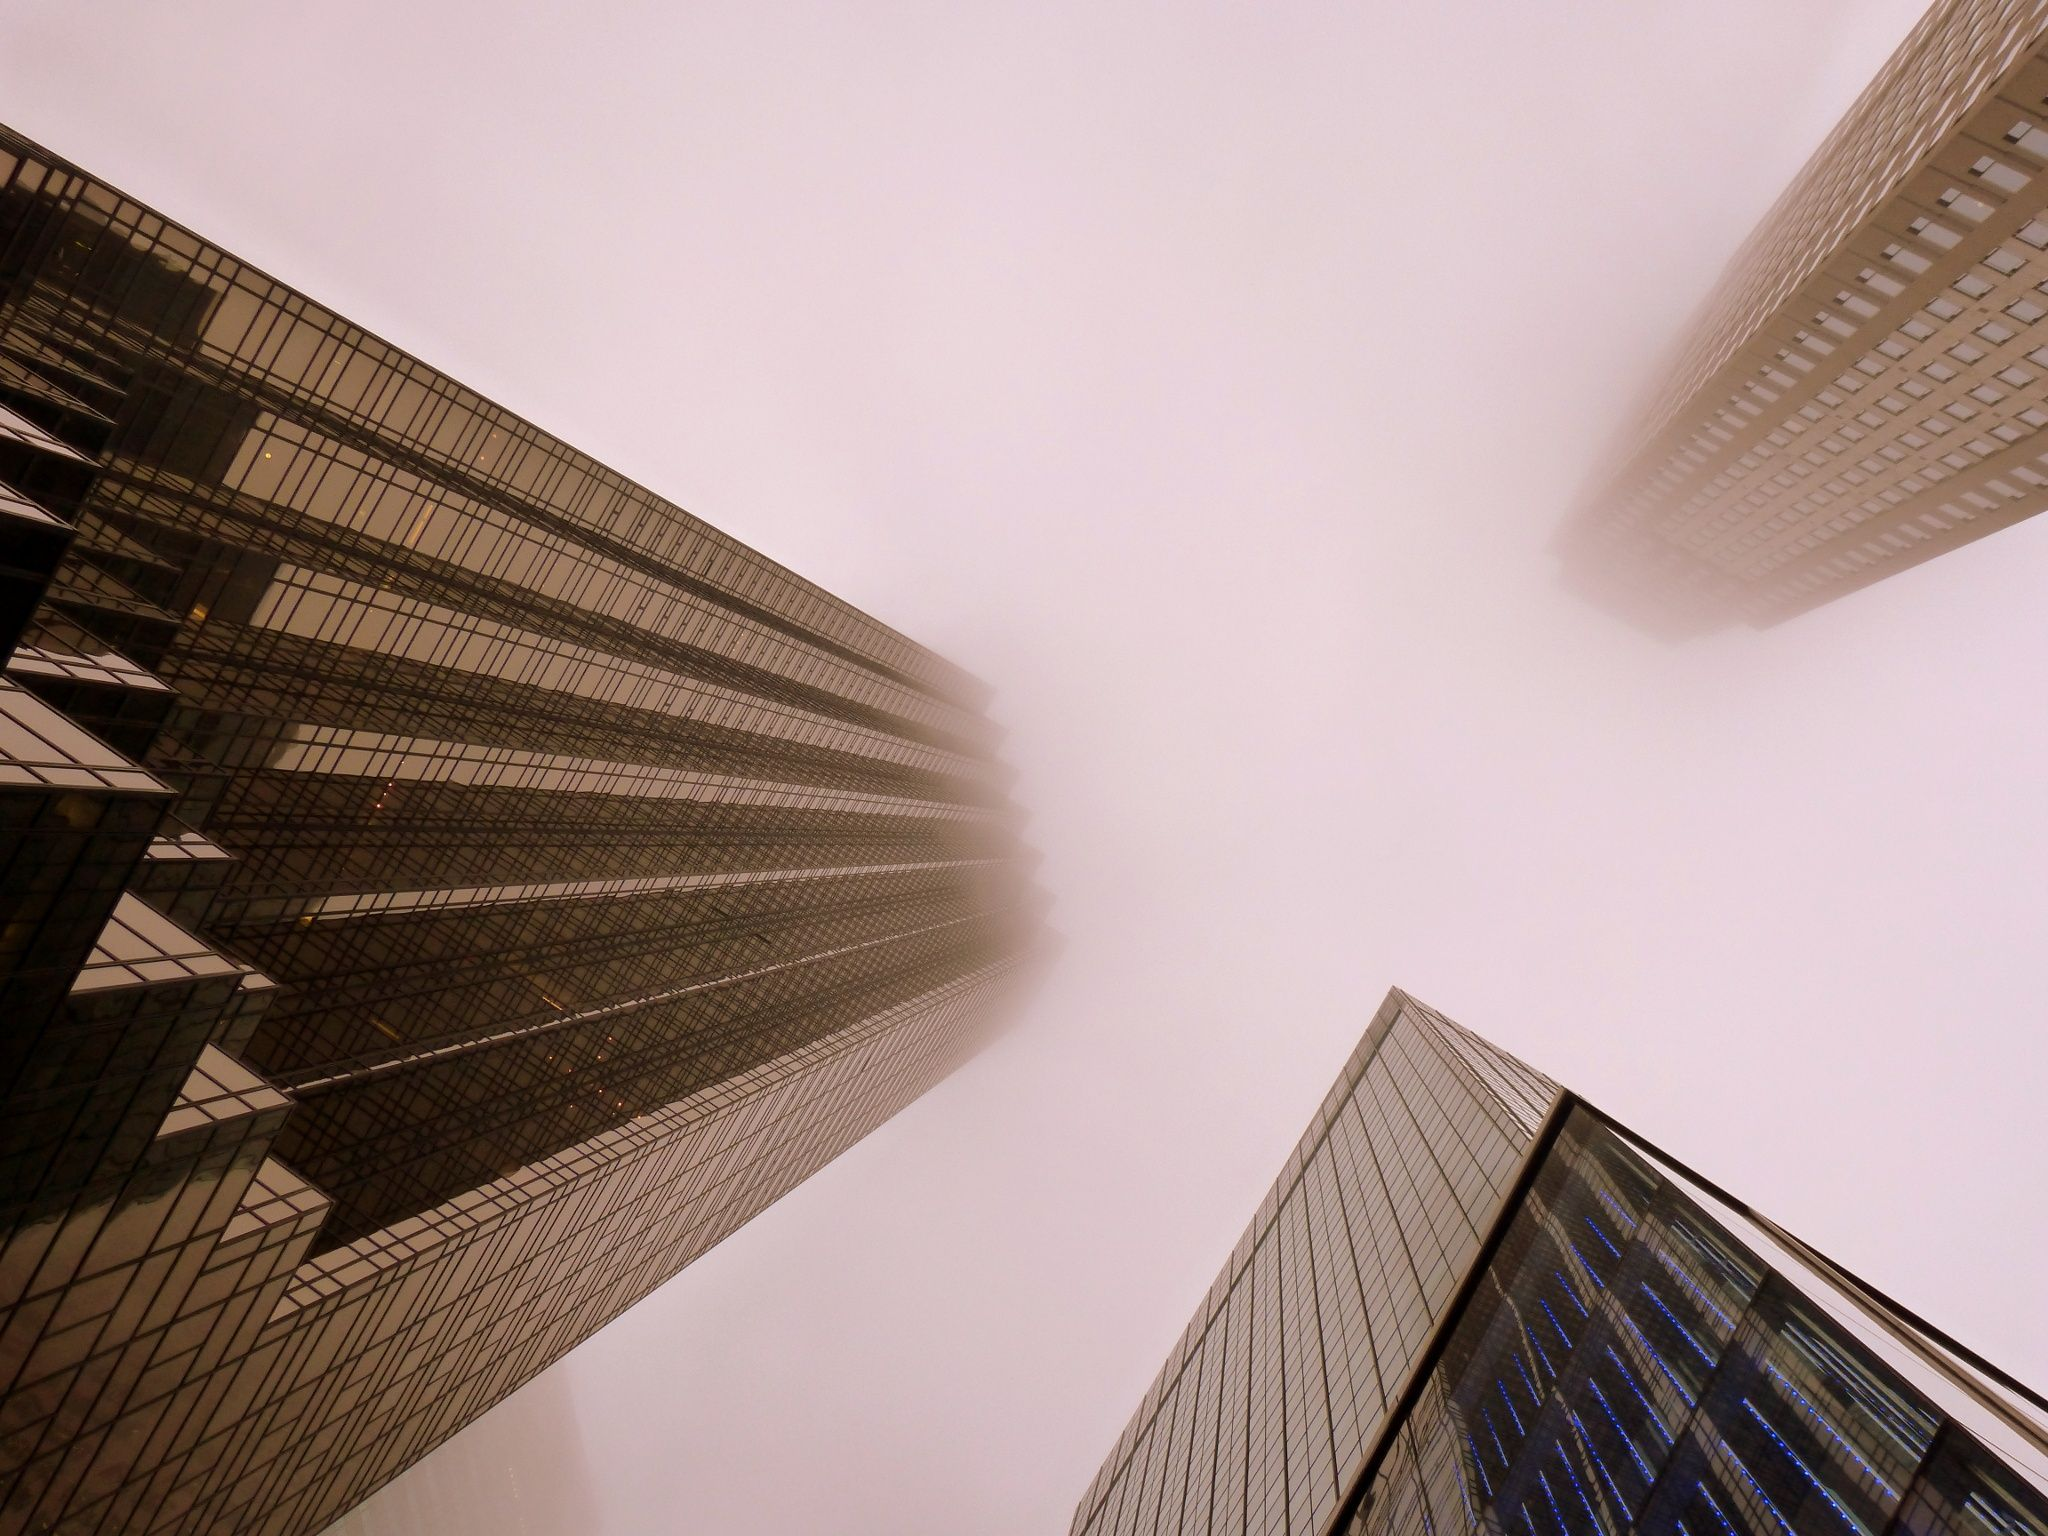 Looking up NYC Skyscrapers trio by Ludovic Farine on 500px